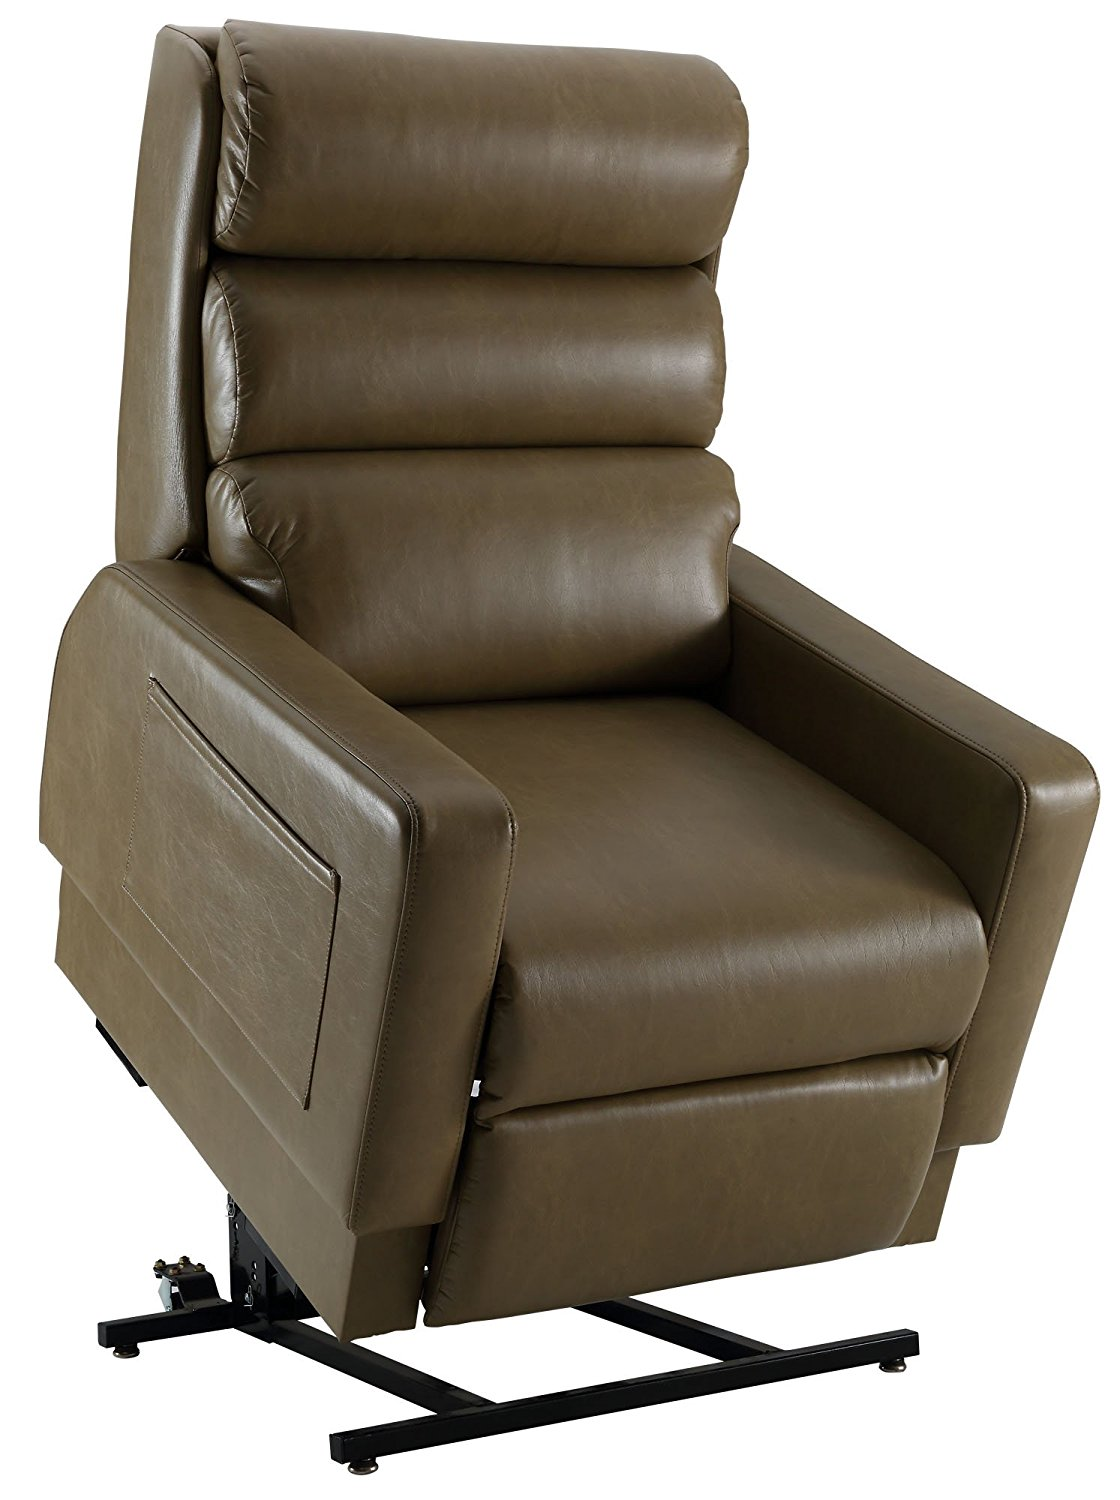 Infinite Position Lift Chair Cozzia Mc 520 Lay Flat Lift Infinite Position Dual Motor